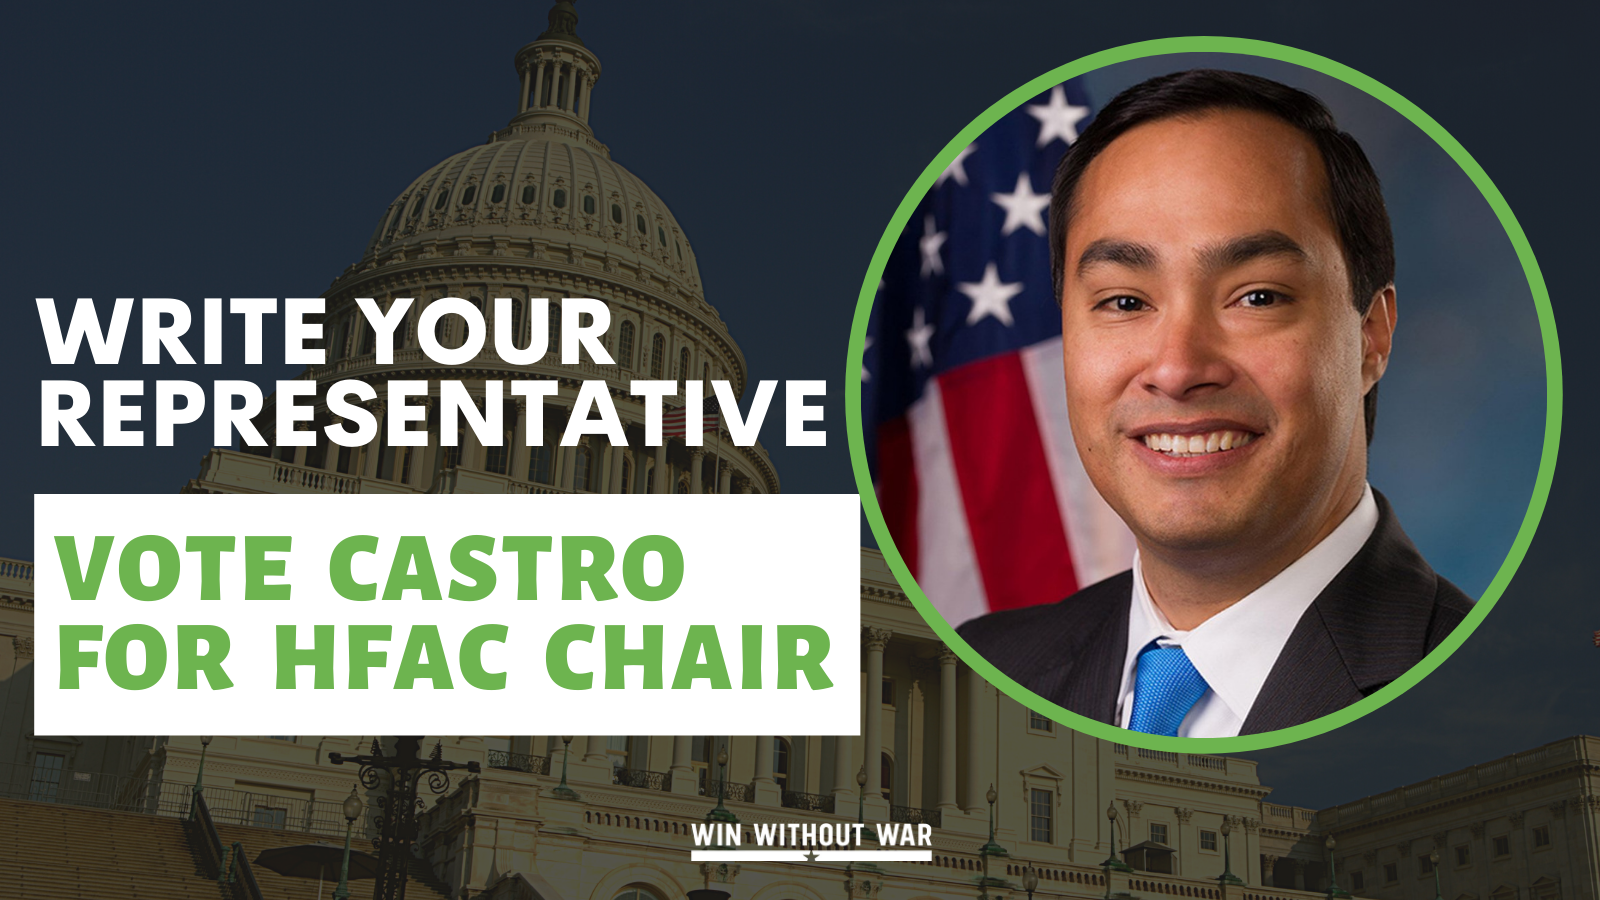 Joaquin Castro for HFAC Chair!